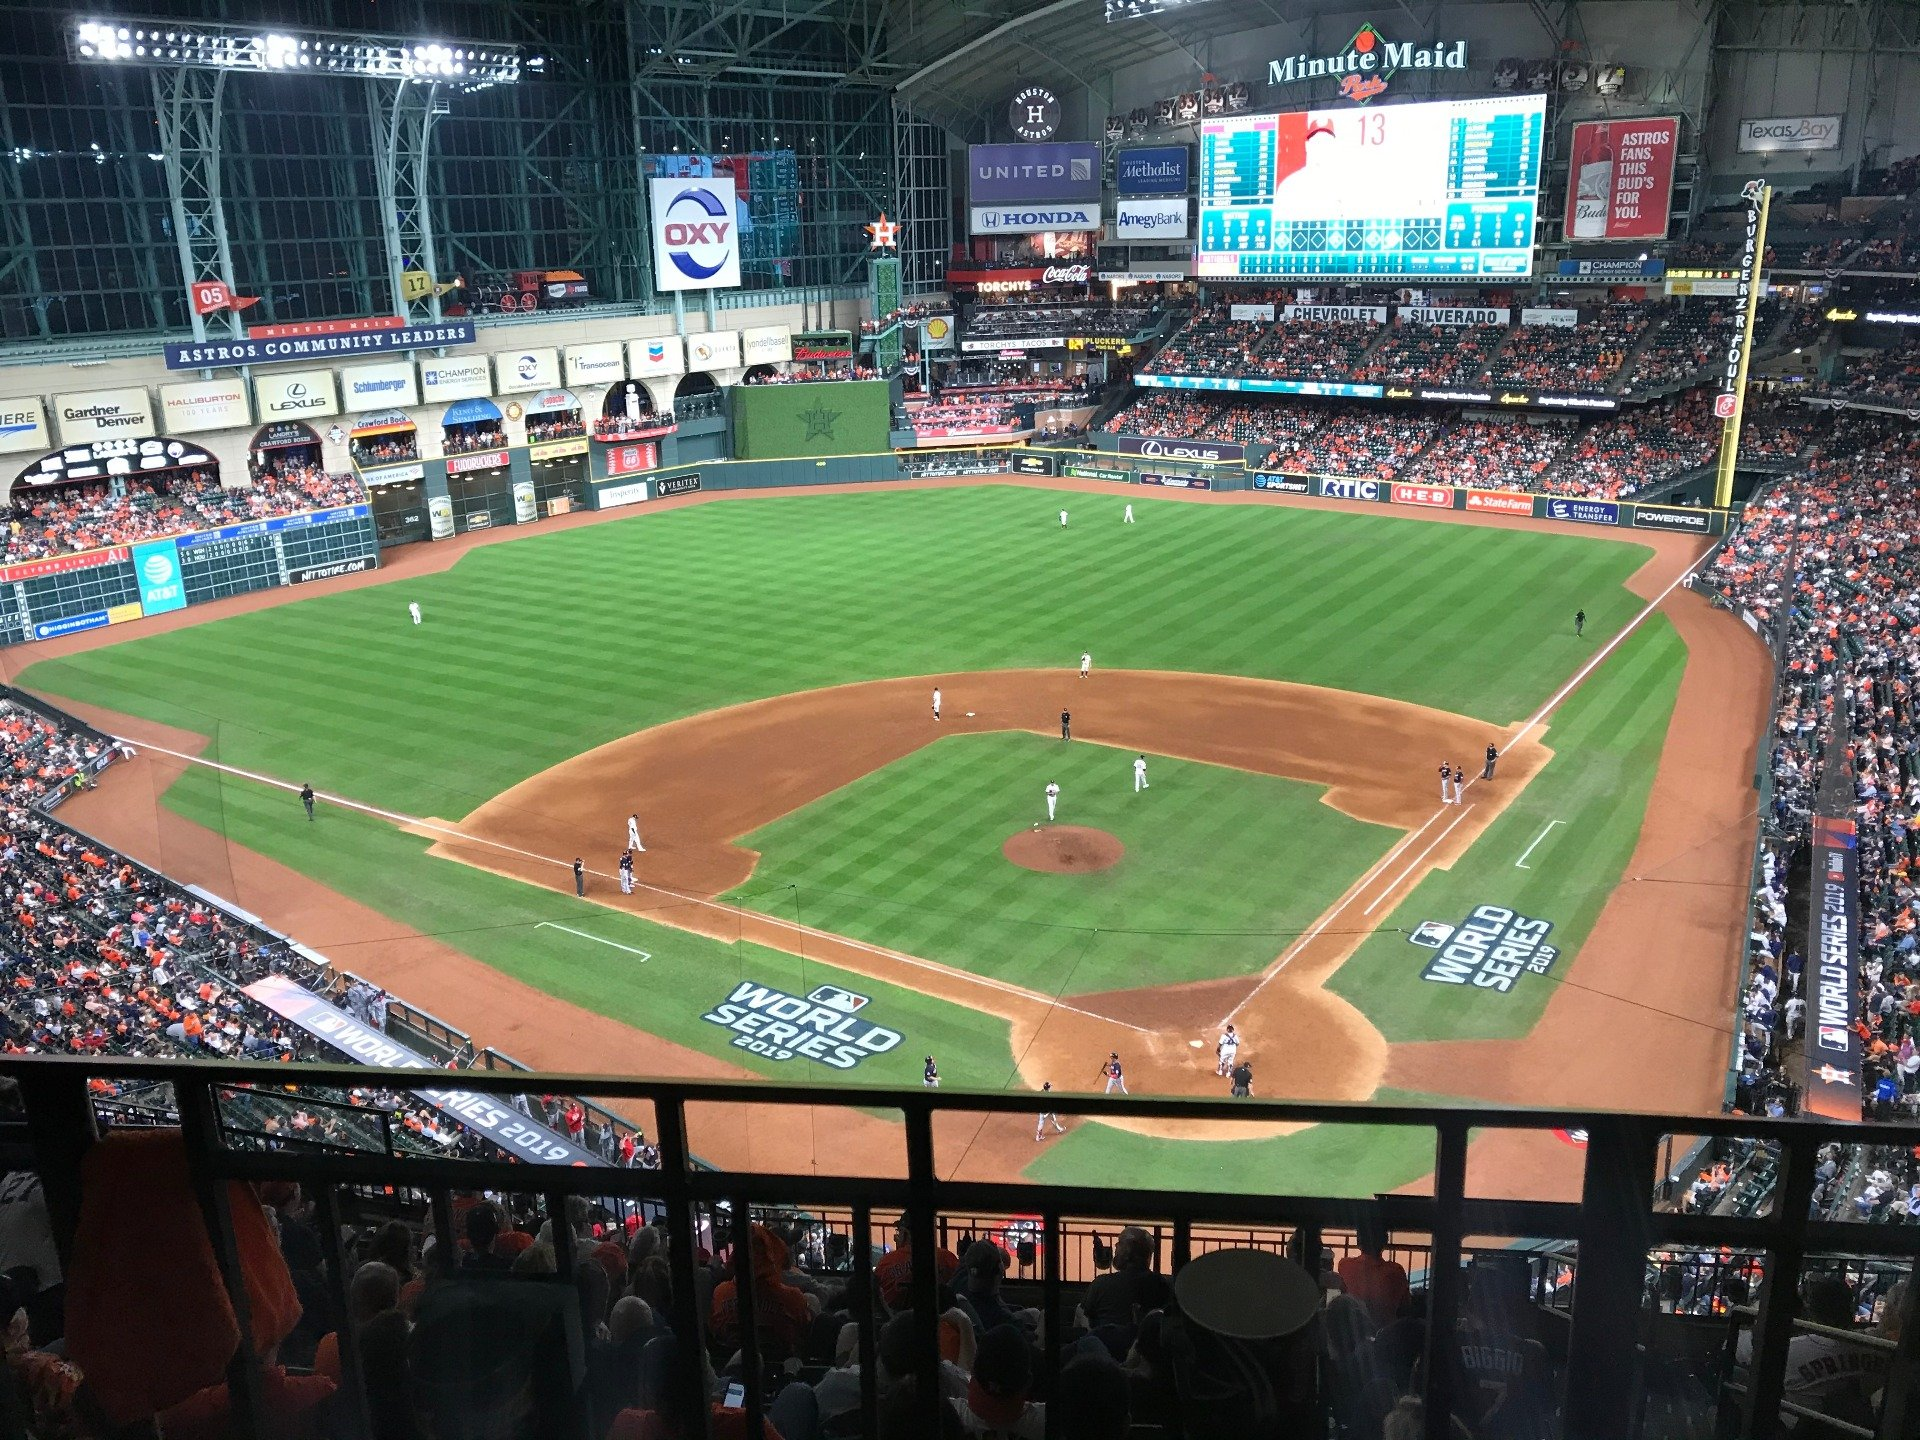 Minute Maid Park Section 417 Row 2 Seat 16